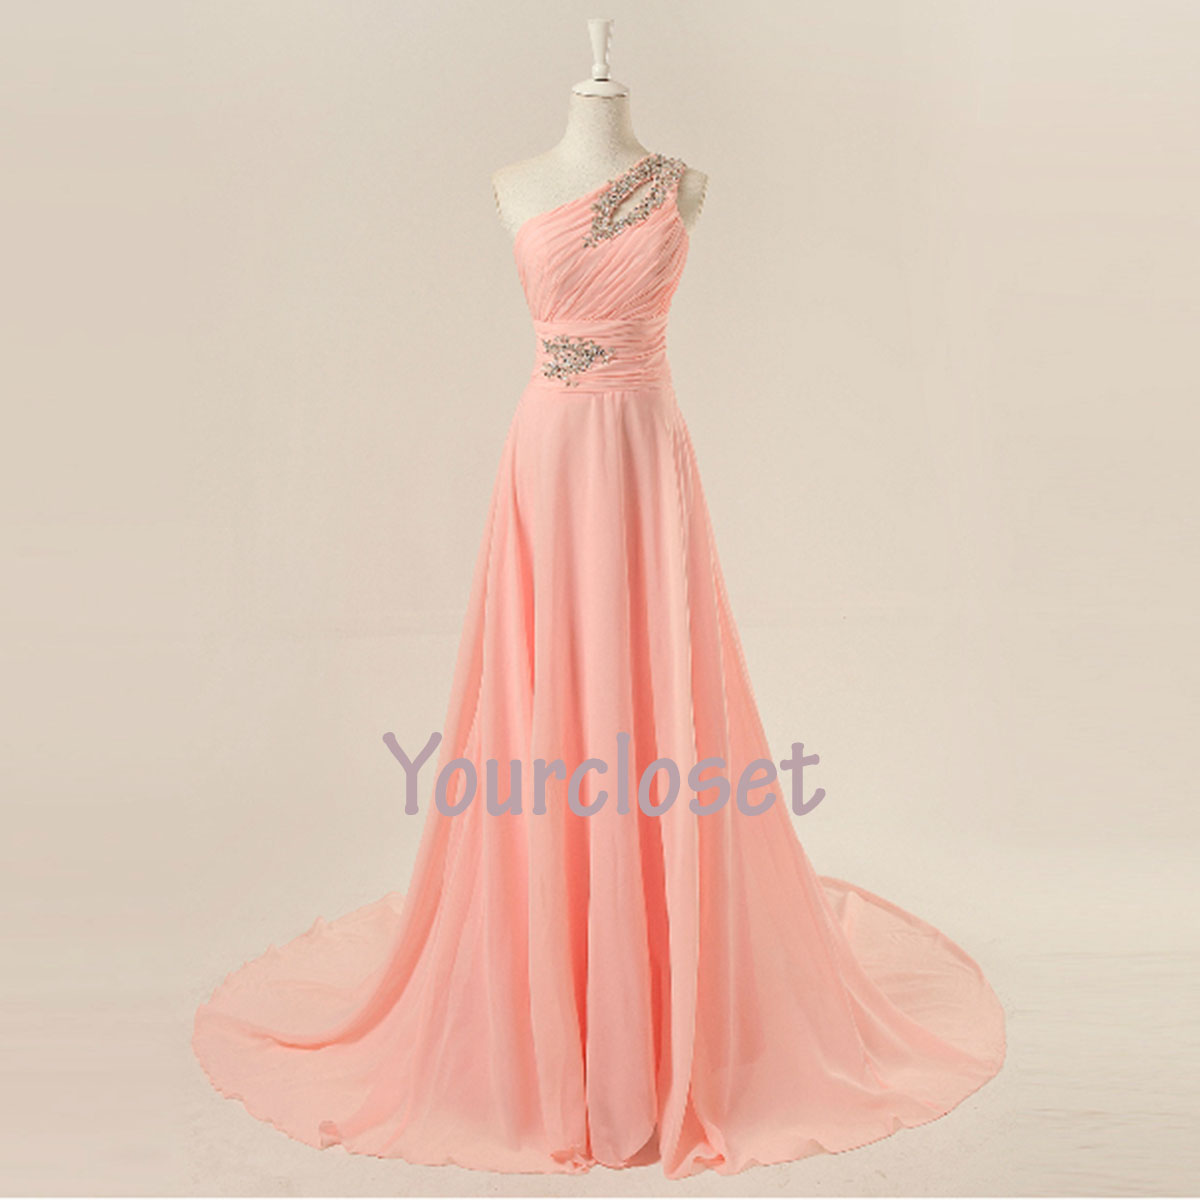 Light Pink Prom Dresses | Fashion Wallpaper